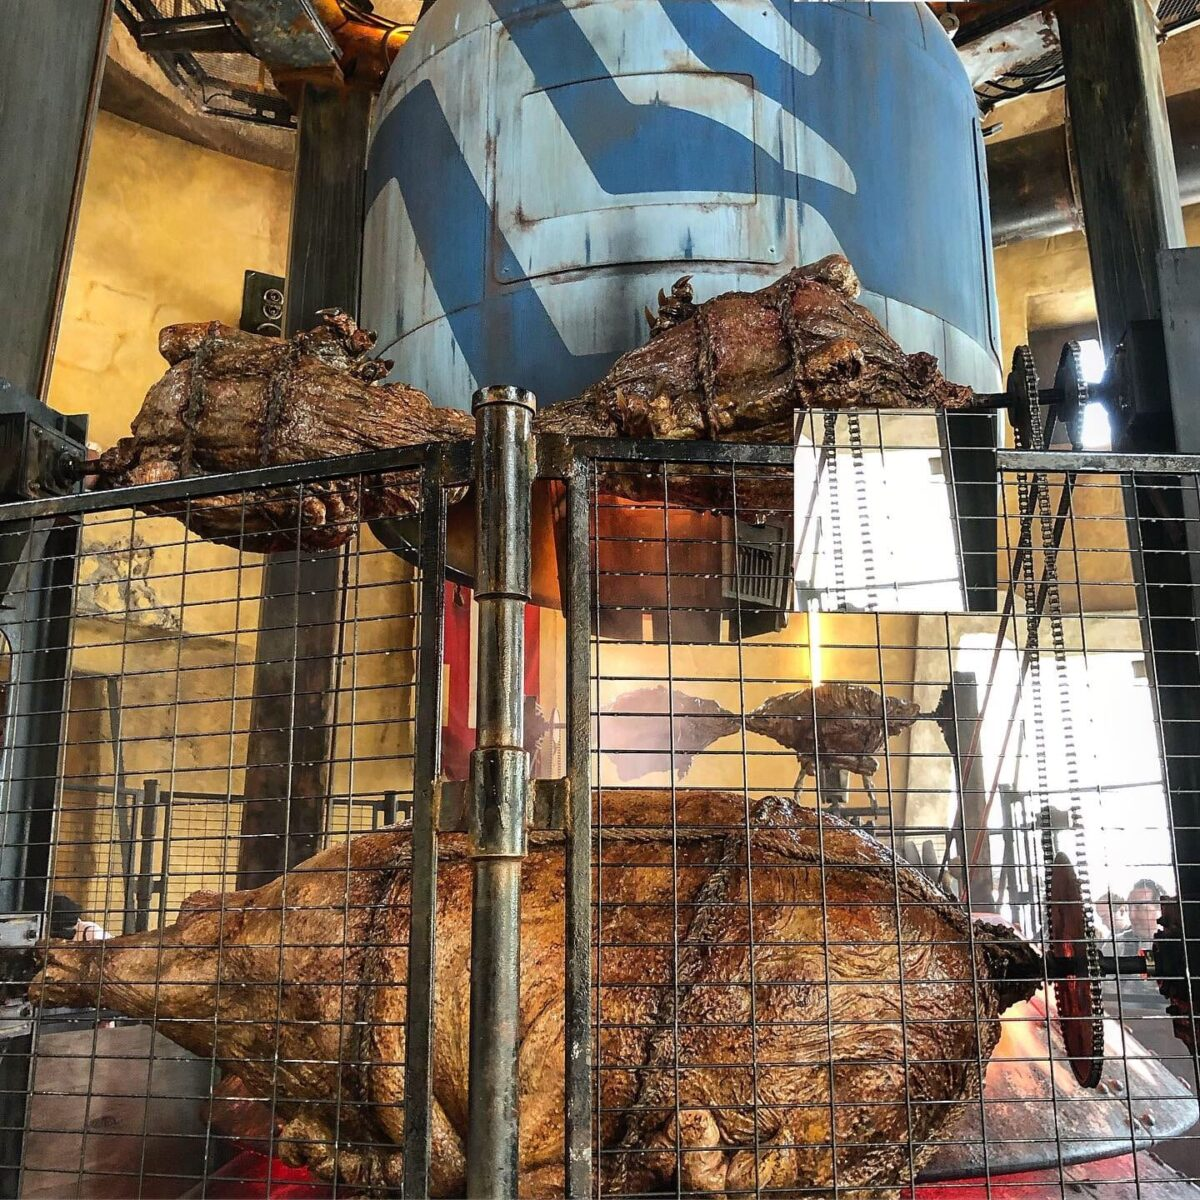 Pigs on Roasters, Black Fence and Blue Oven